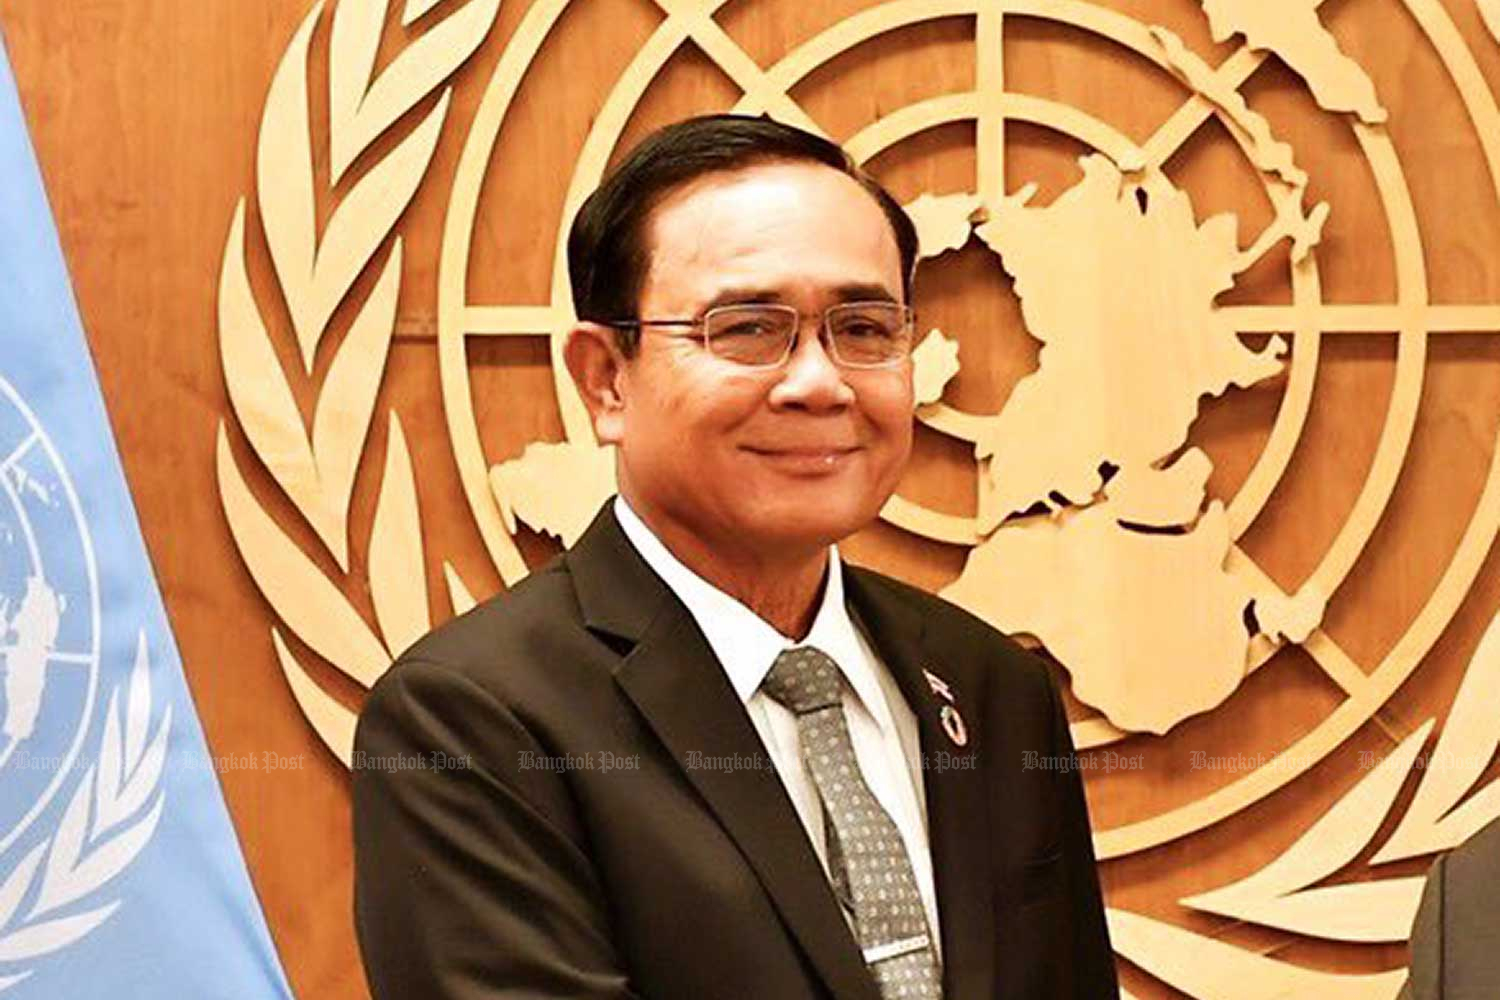 Gen Prayut was quoted as reiterating that Thailand will promote Asean to become a people-centric community.